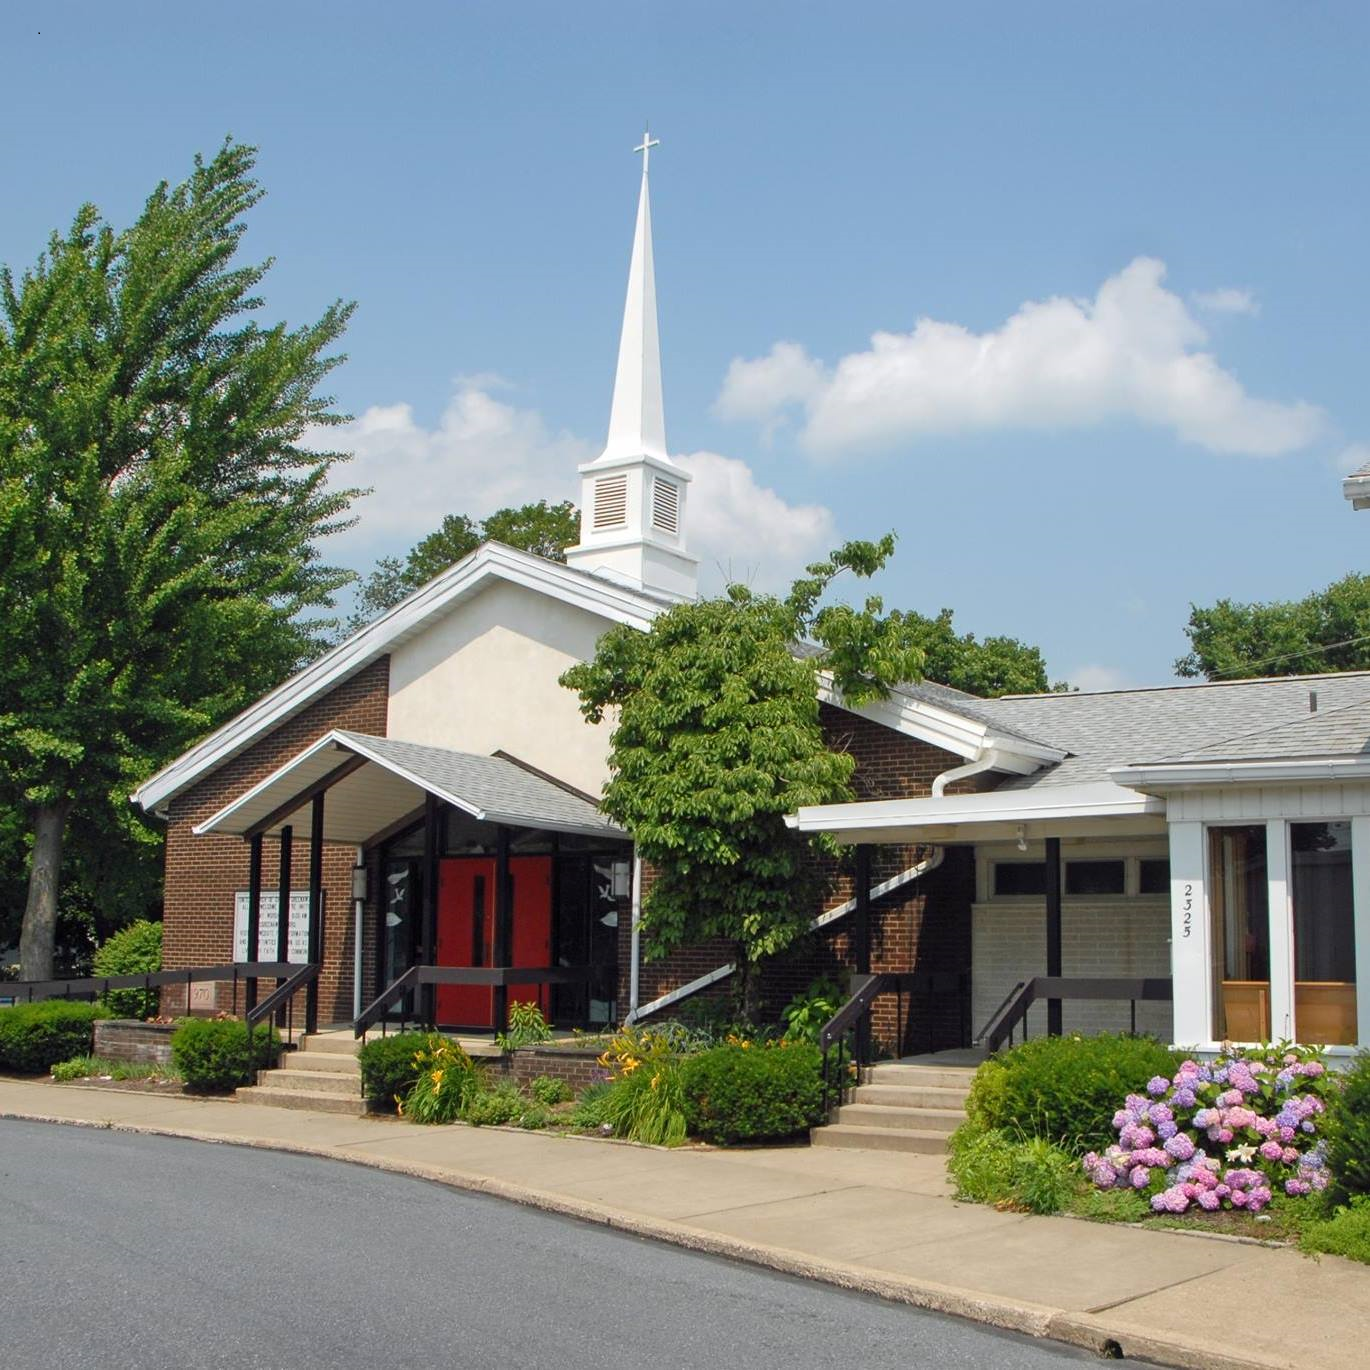 The United Church of Christ Greenawalds is located at the corner of Albright and Orchard Avenues in South Whitehall Township, a suburb of Allentown, Pennsylvania.